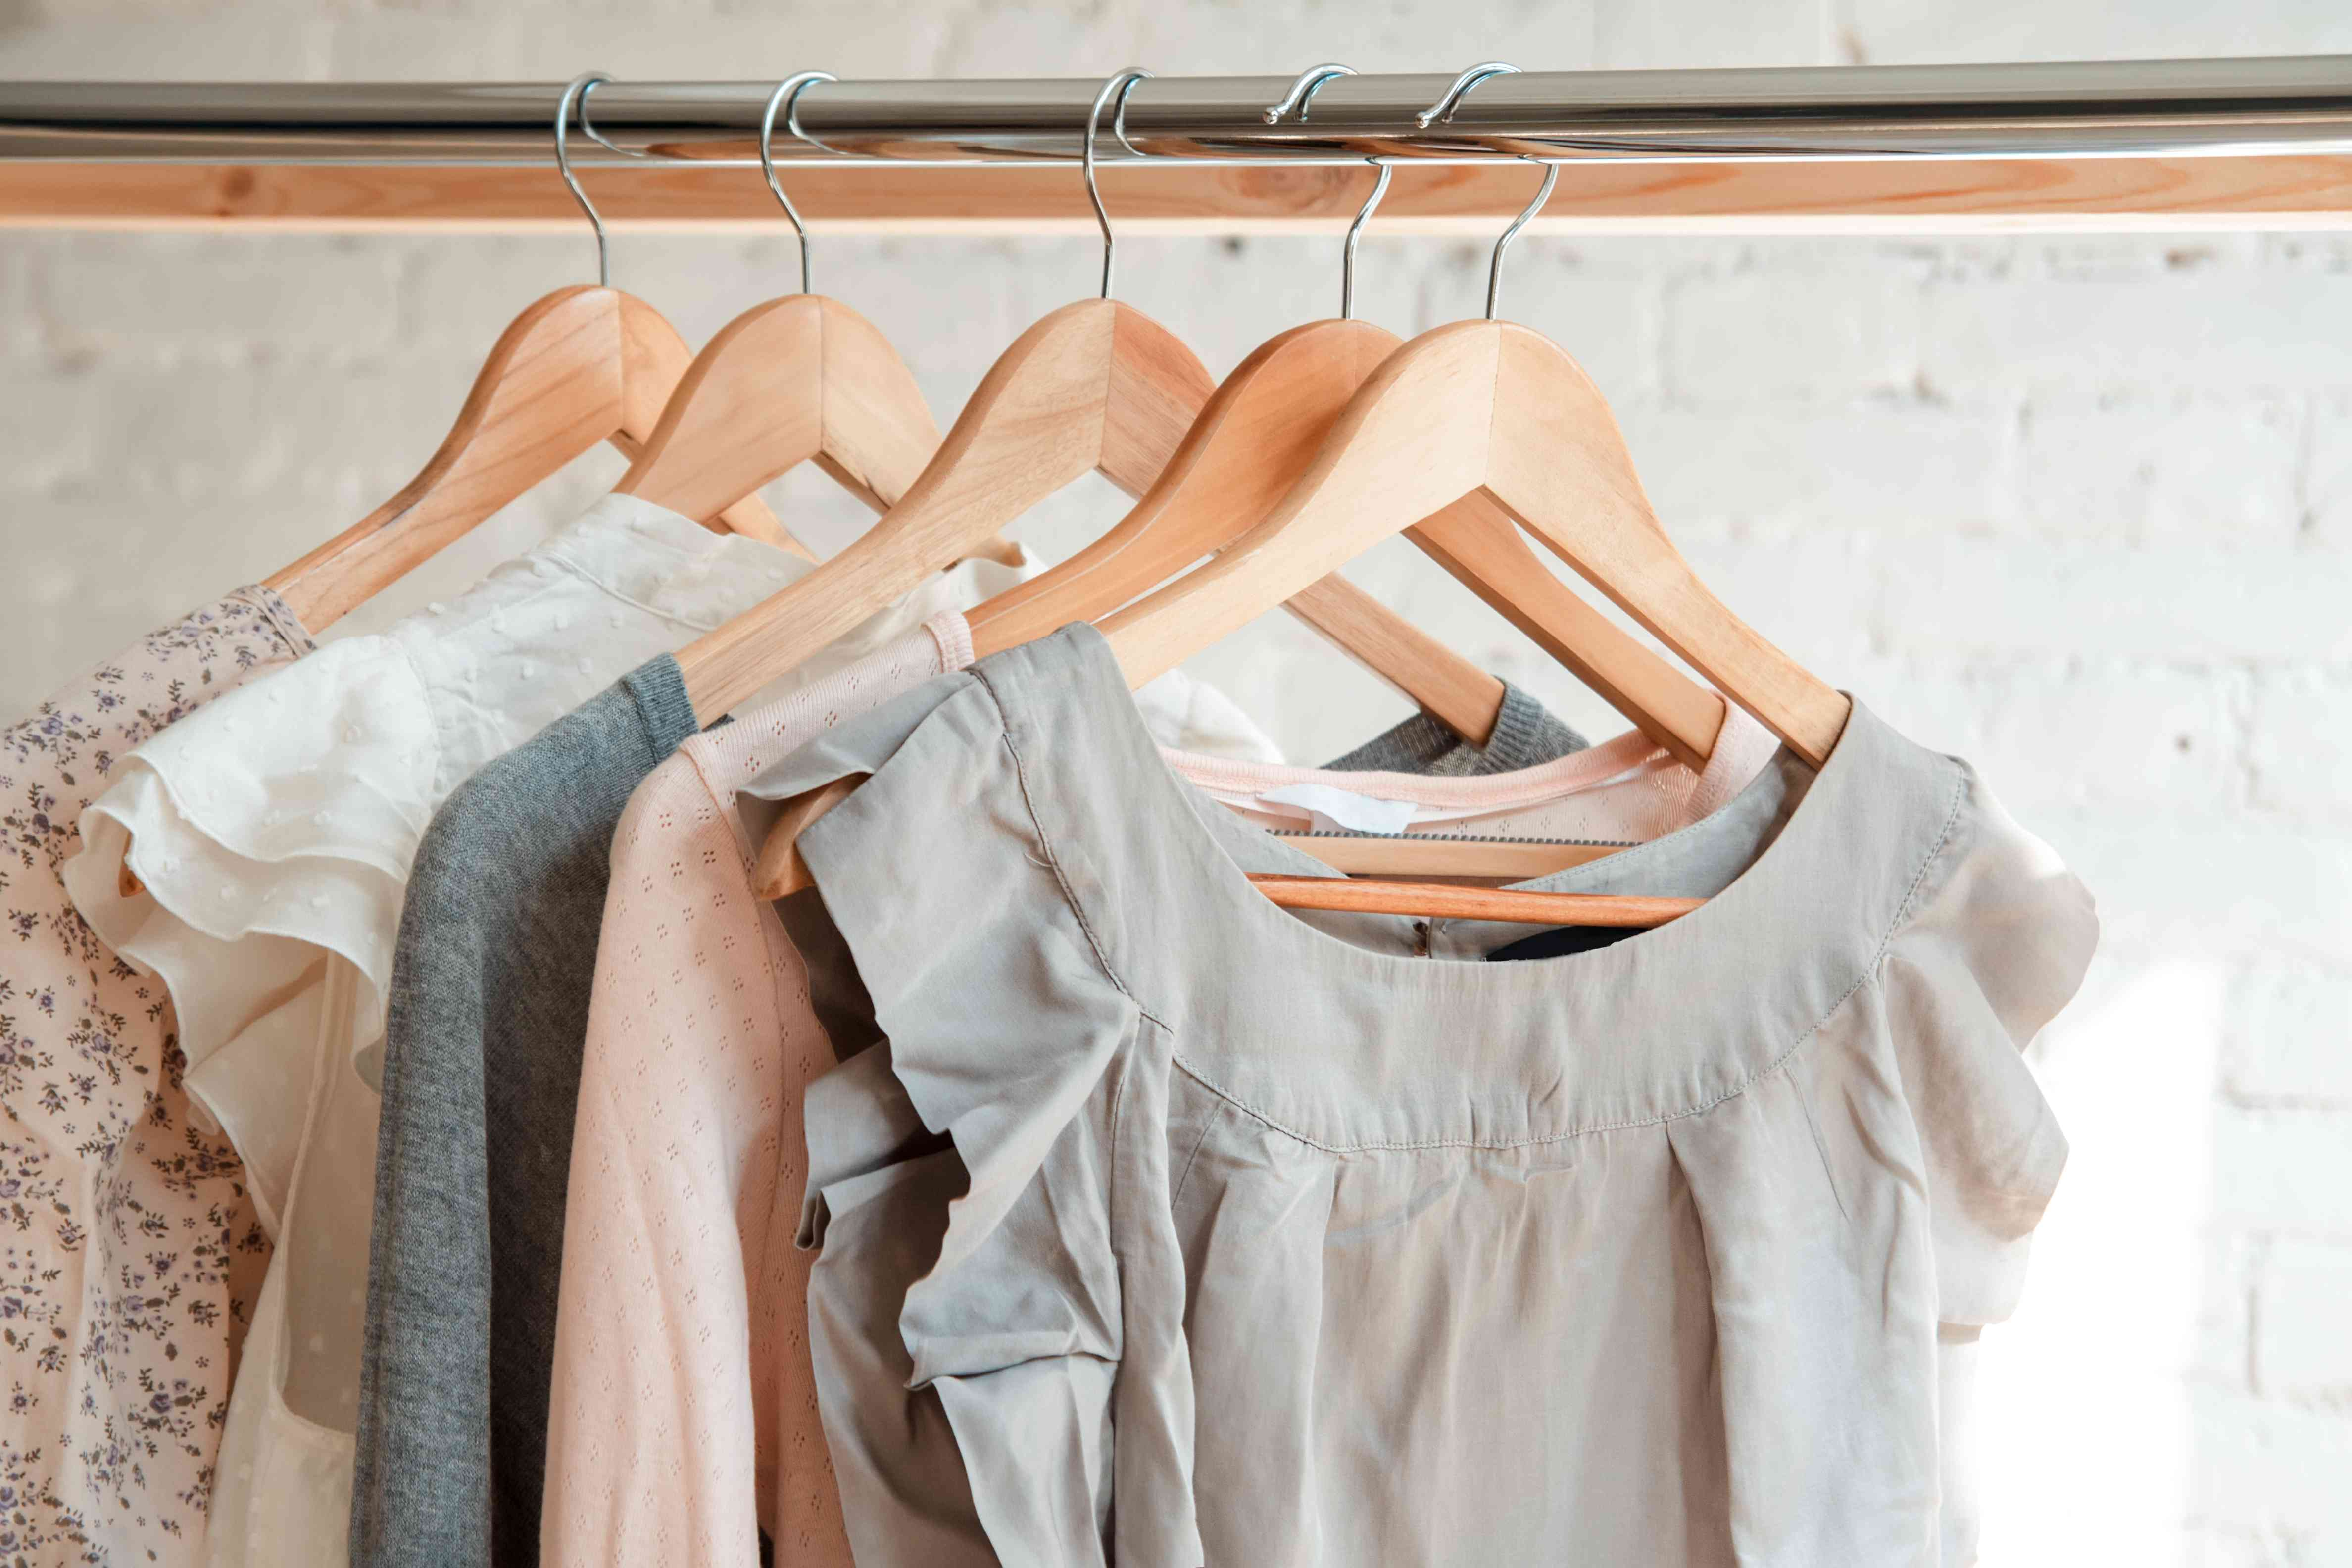 Summer Clothing in closet